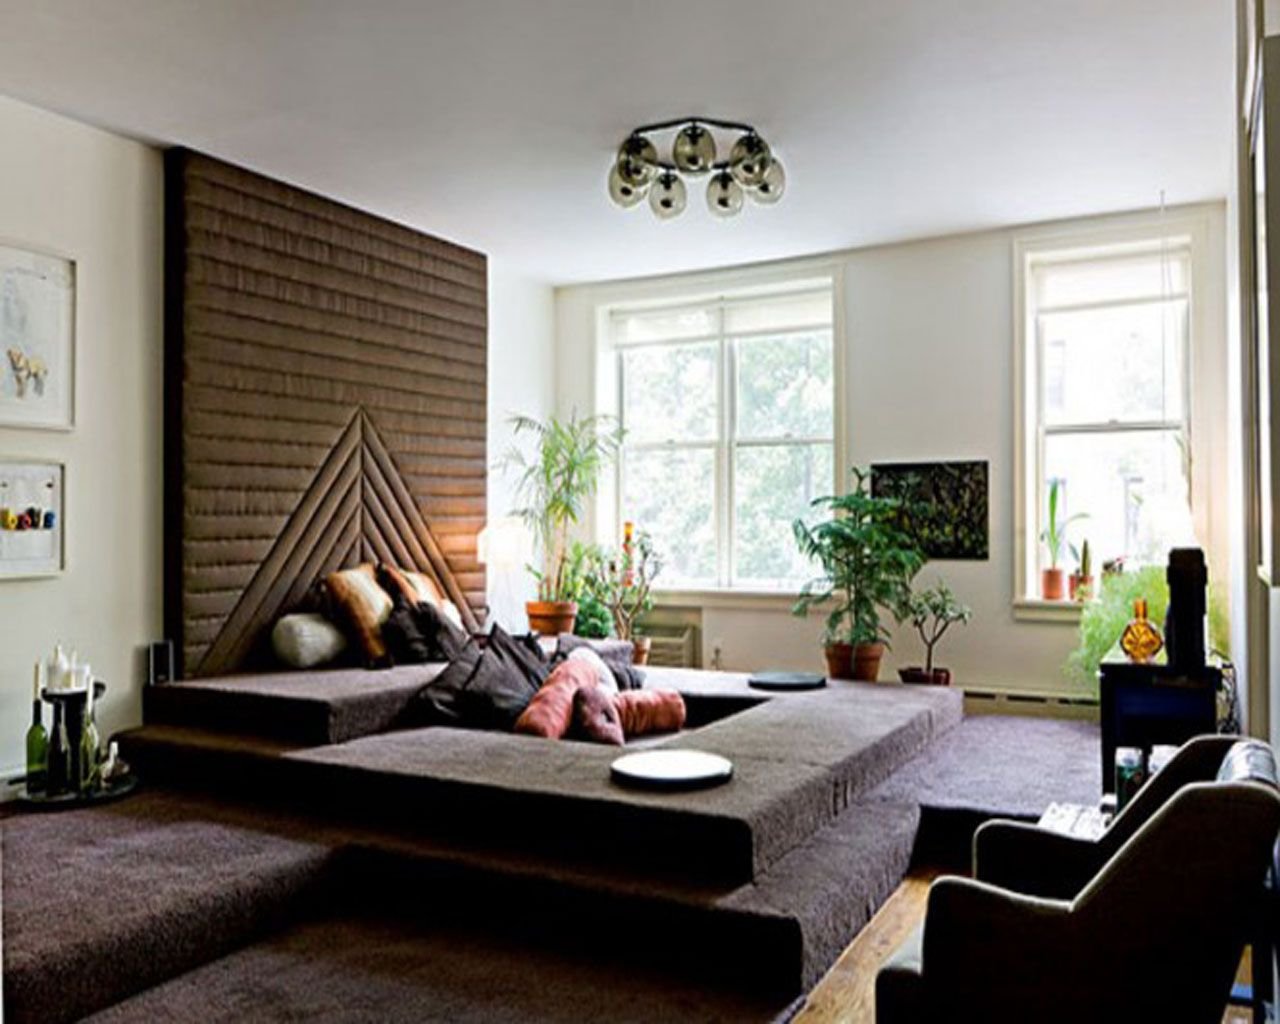 lounge-living-room-decorating-ideas-ivory-wall-rectangular-windows ...